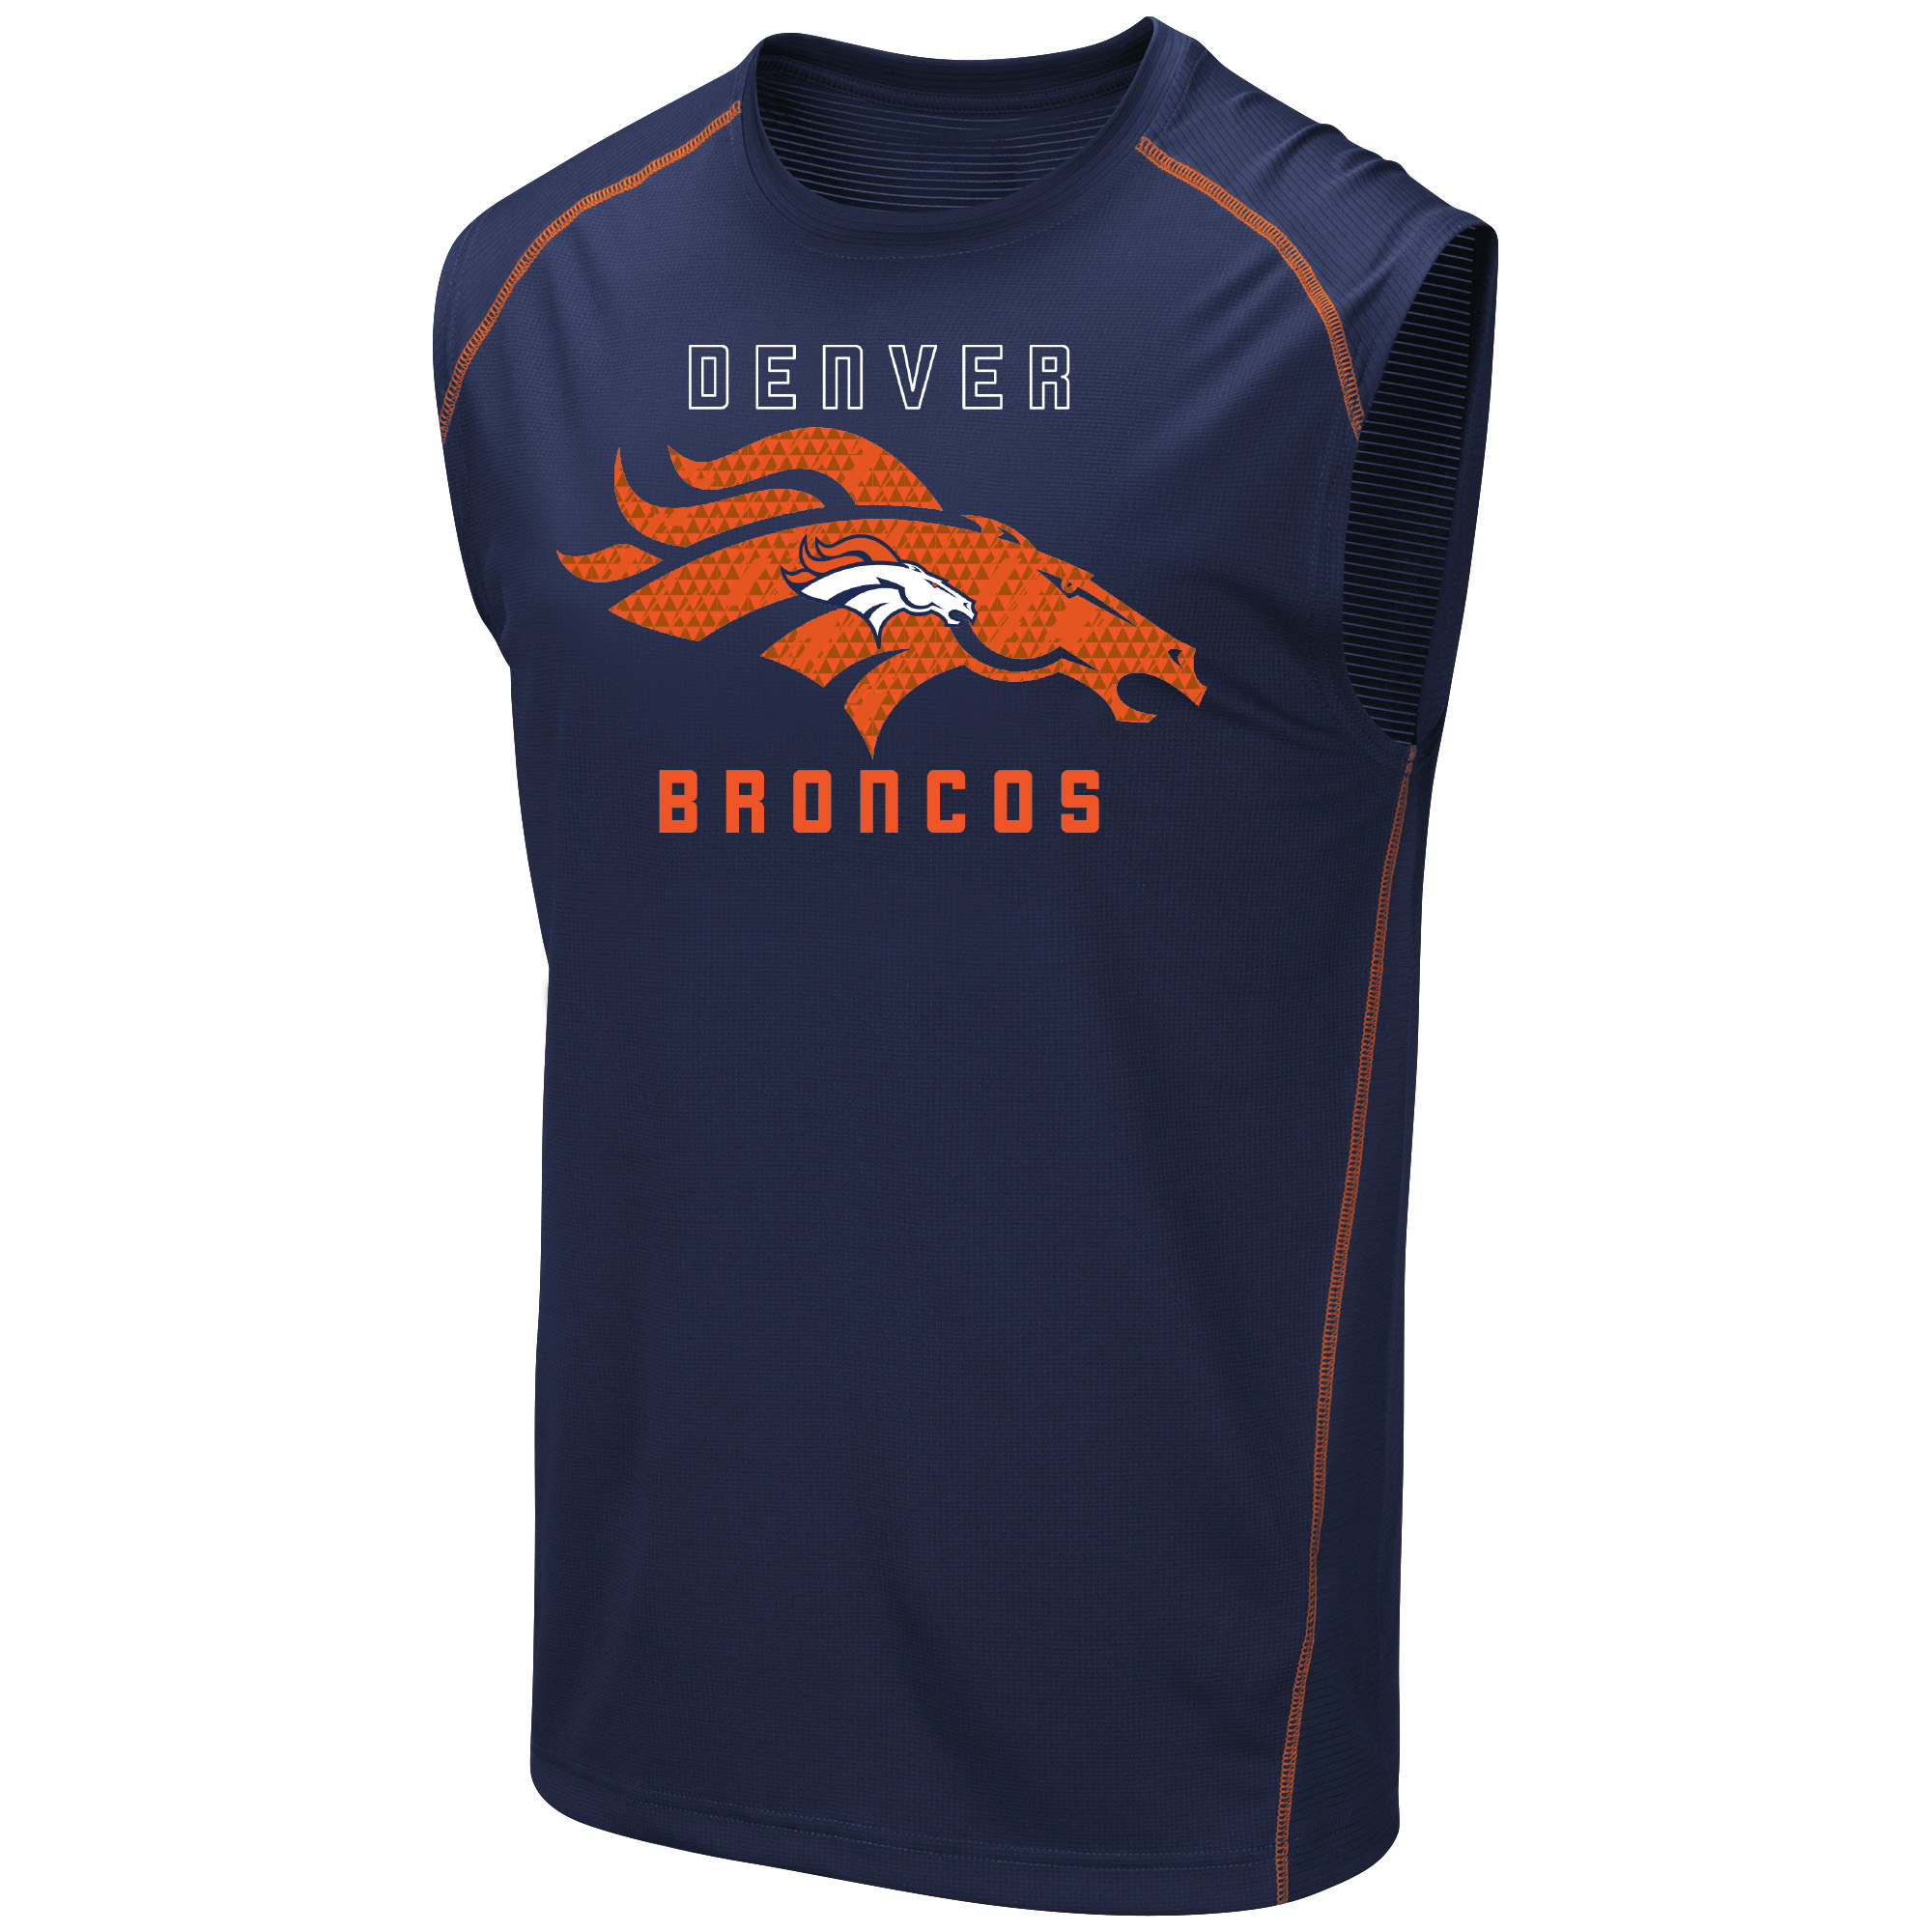 Men's Majestic Navy Denver Broncos Endurance Test Tank Top